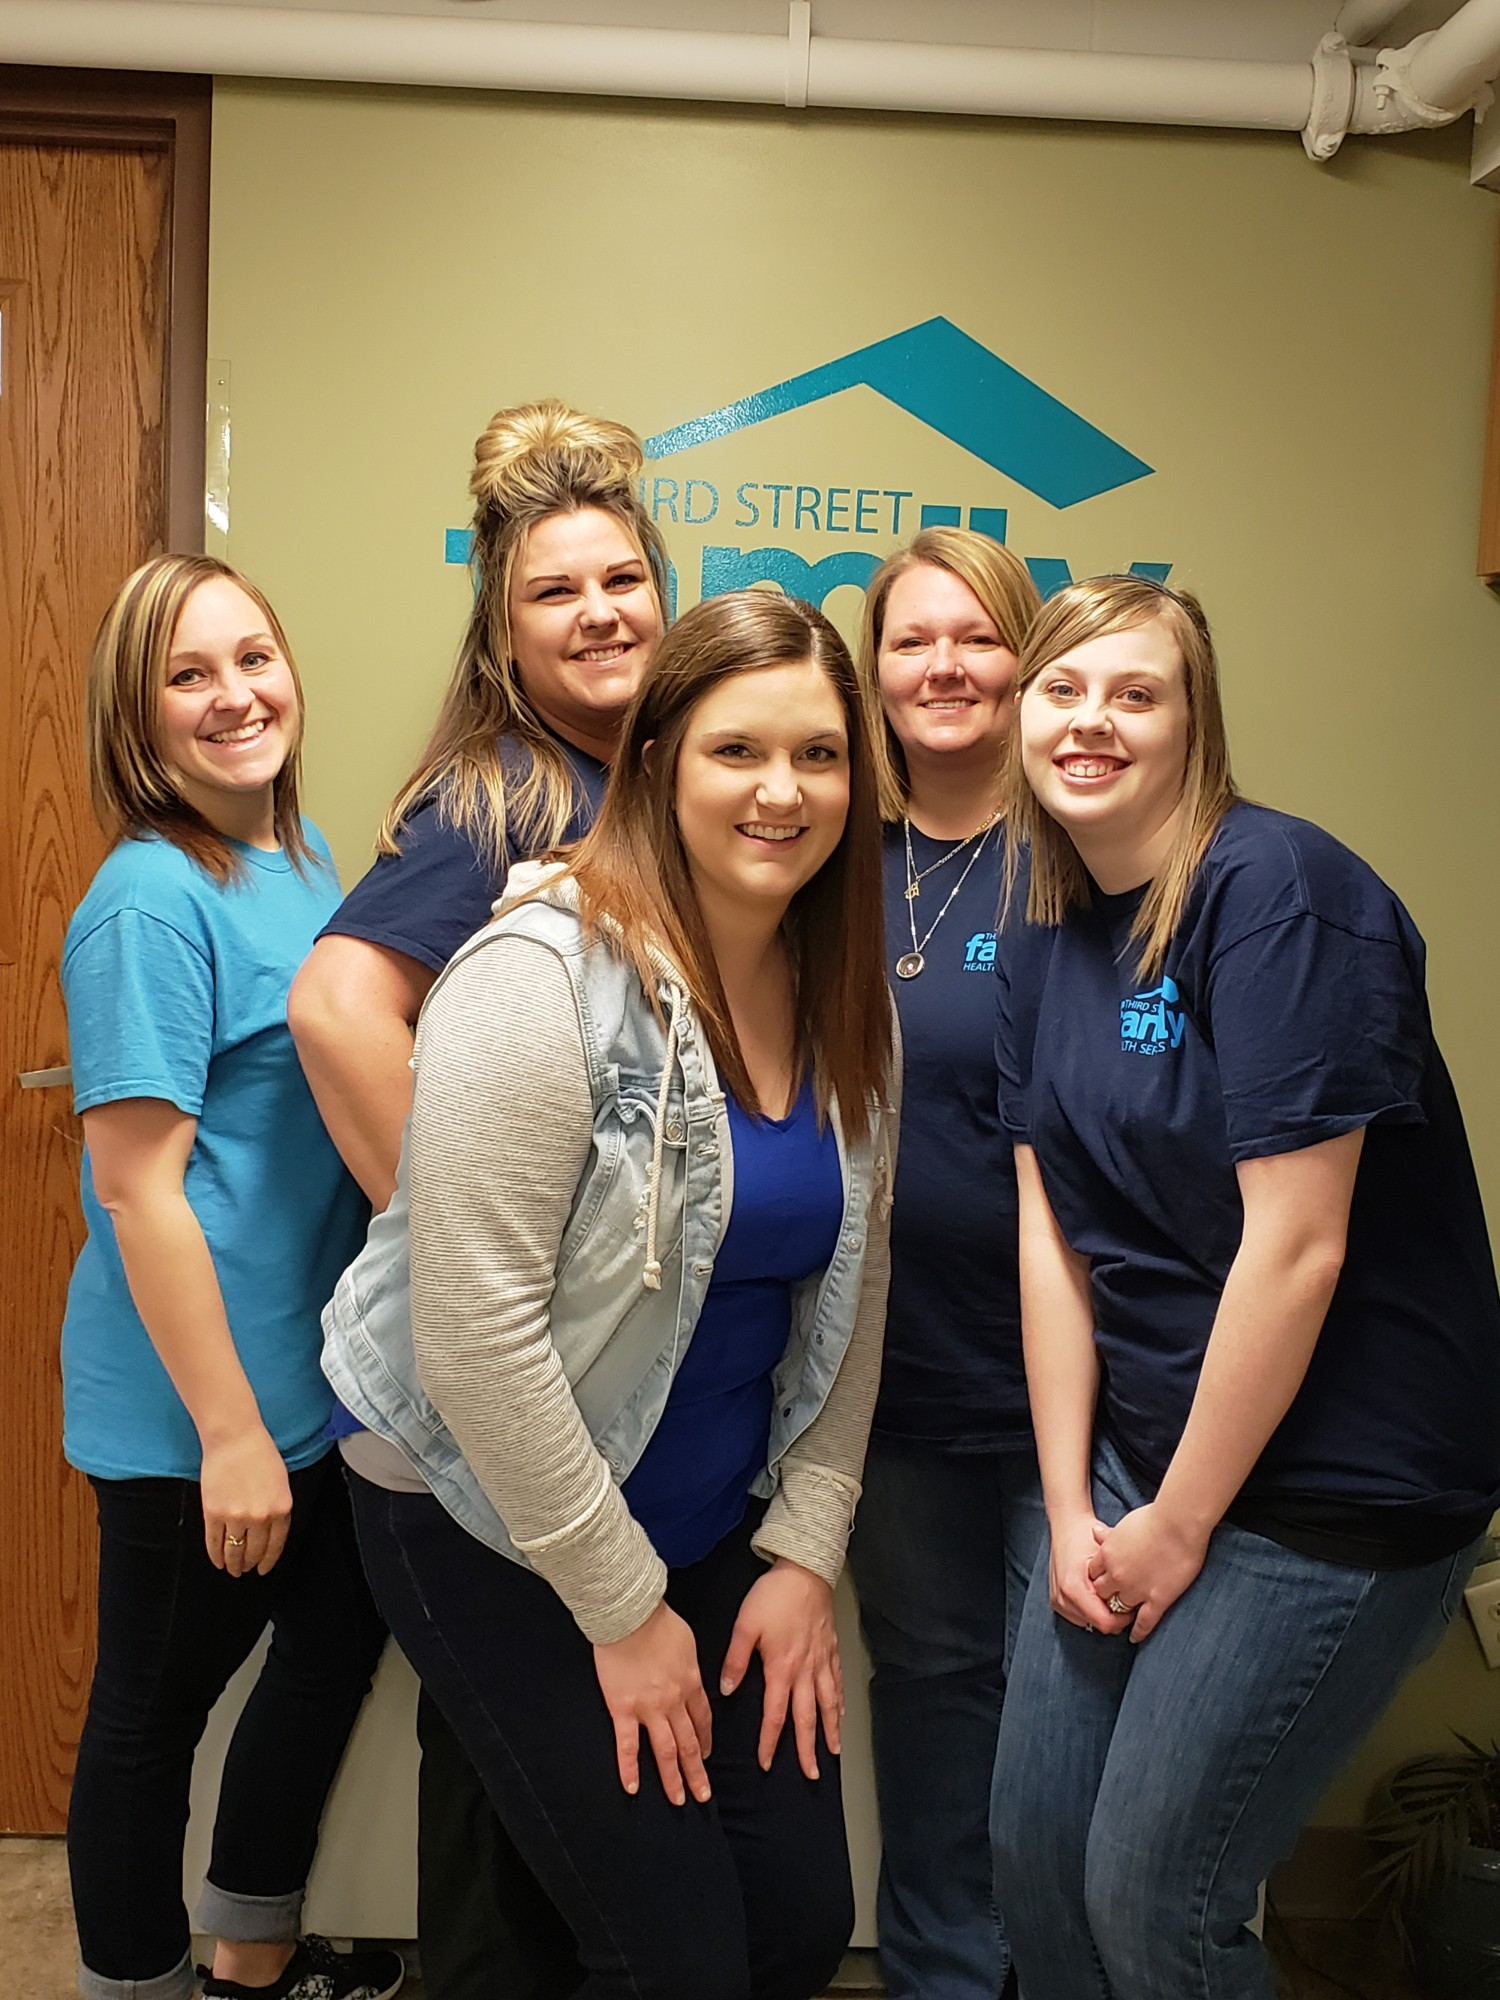 Third Street Family Health Services  Wear Blue to Work 2018